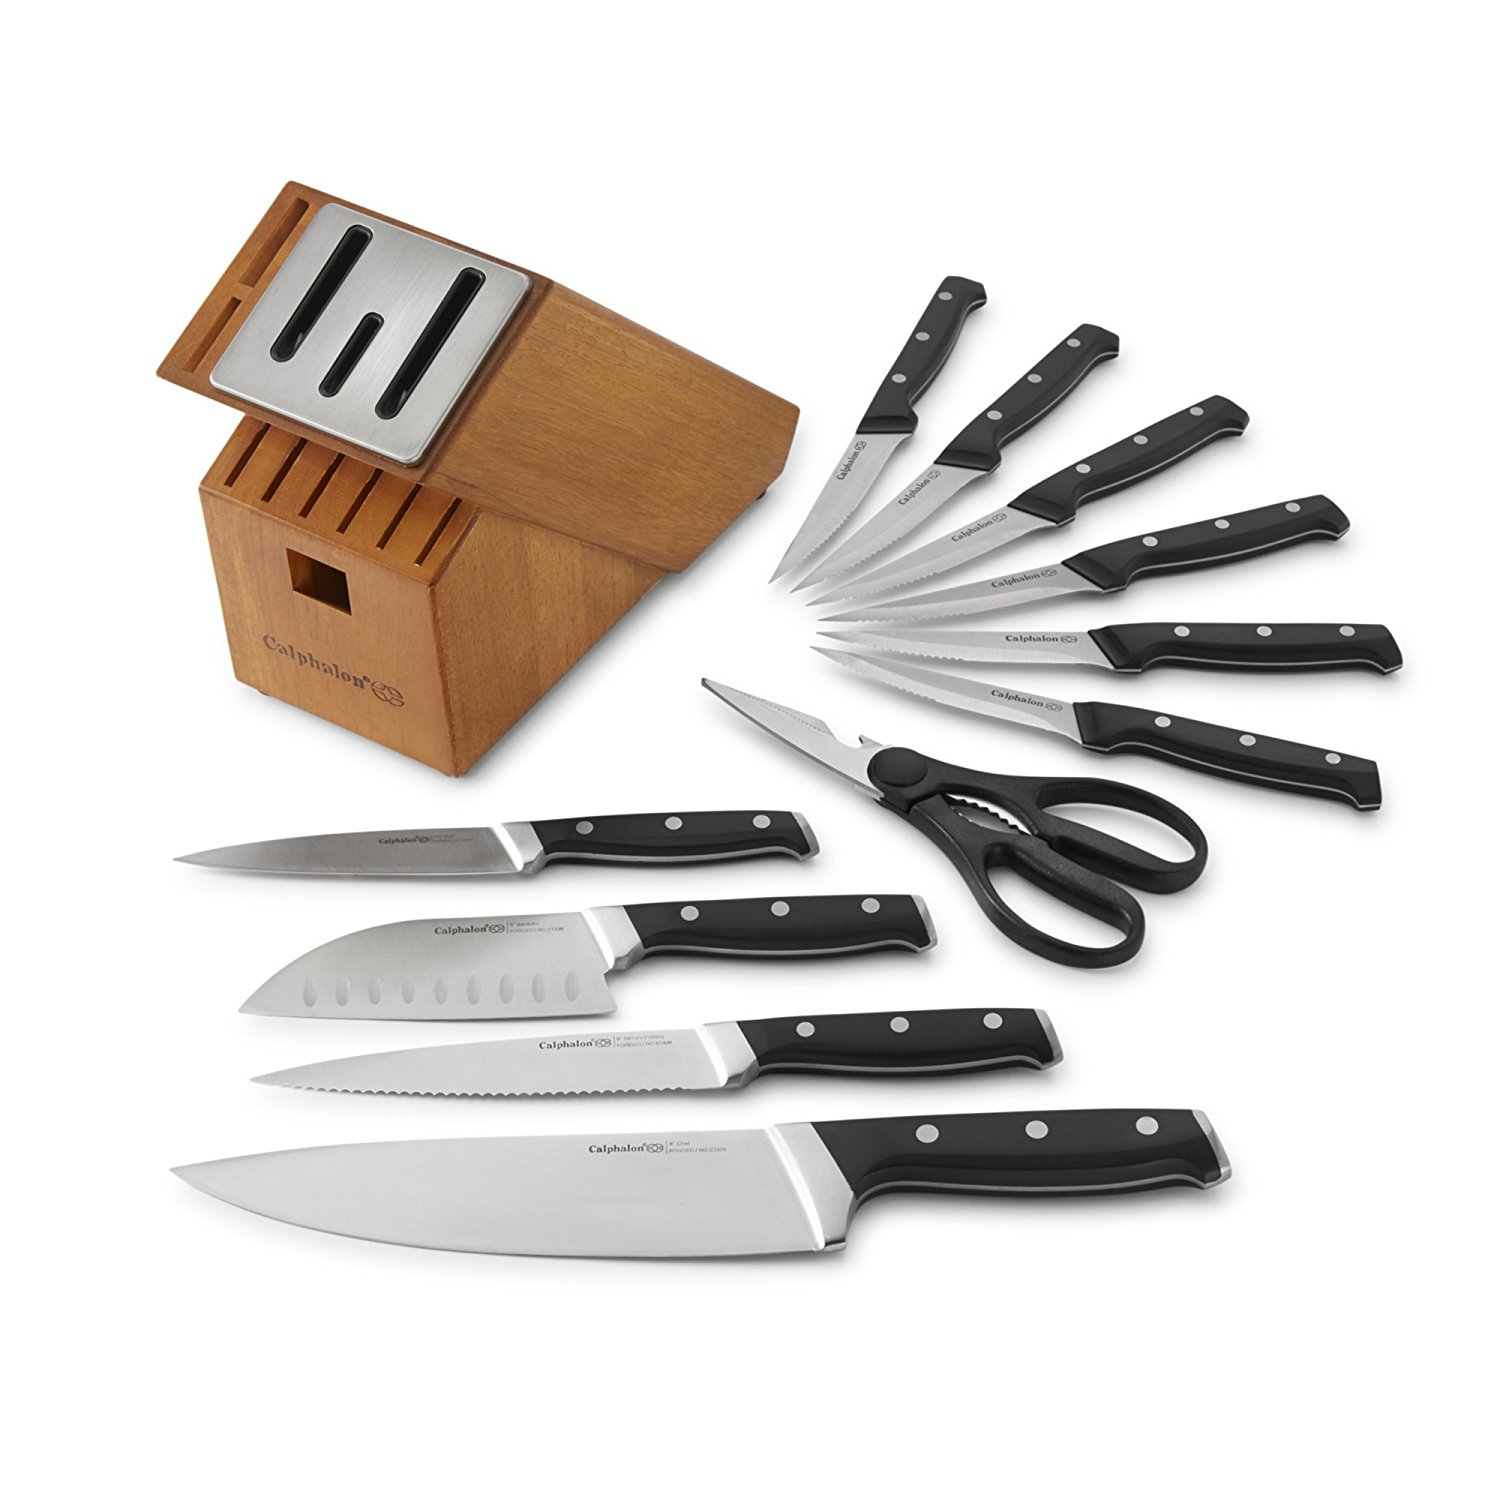 the best cutlery knife sets right now - the wise spoon